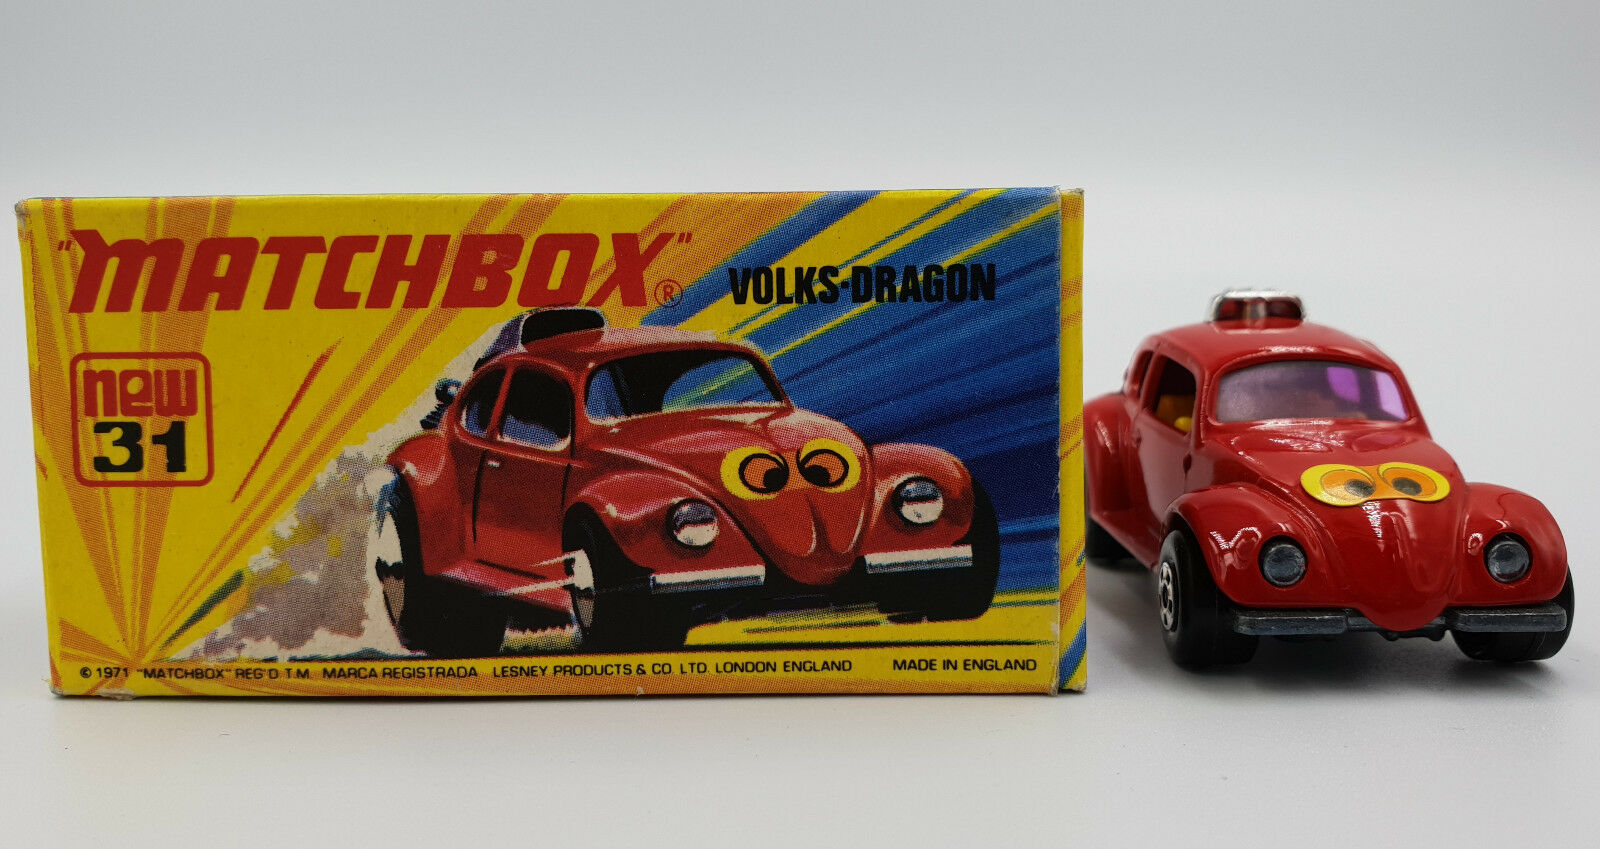 CARS   VOLKS-DRAGON (31) MATCHBOX MODEL MADE IN 1971 (DRMP)